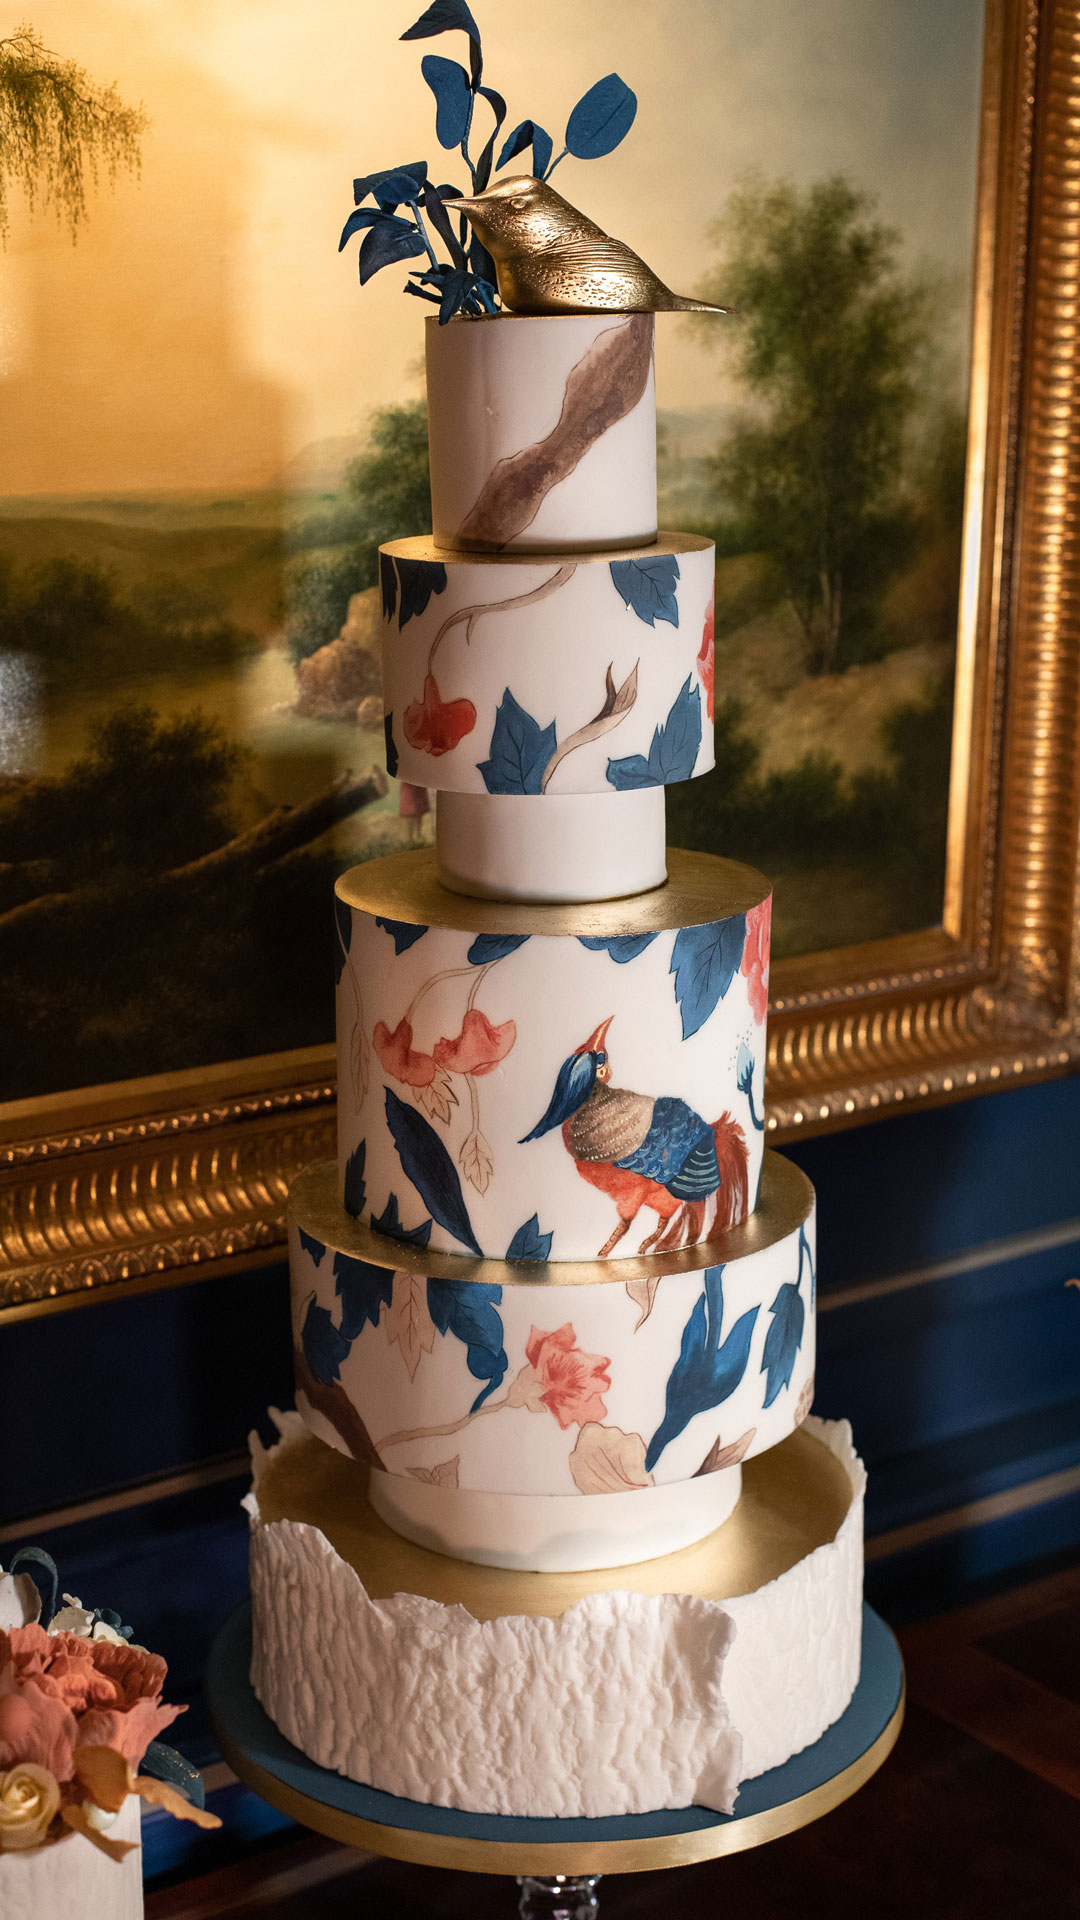 An elegant 5-tier centrepiece wedding cake or corporate cake at The Stafford London with hand painted bird and leaf designs throughout the cake relating to the decor of the dining chairs in The Game Bird restaurant